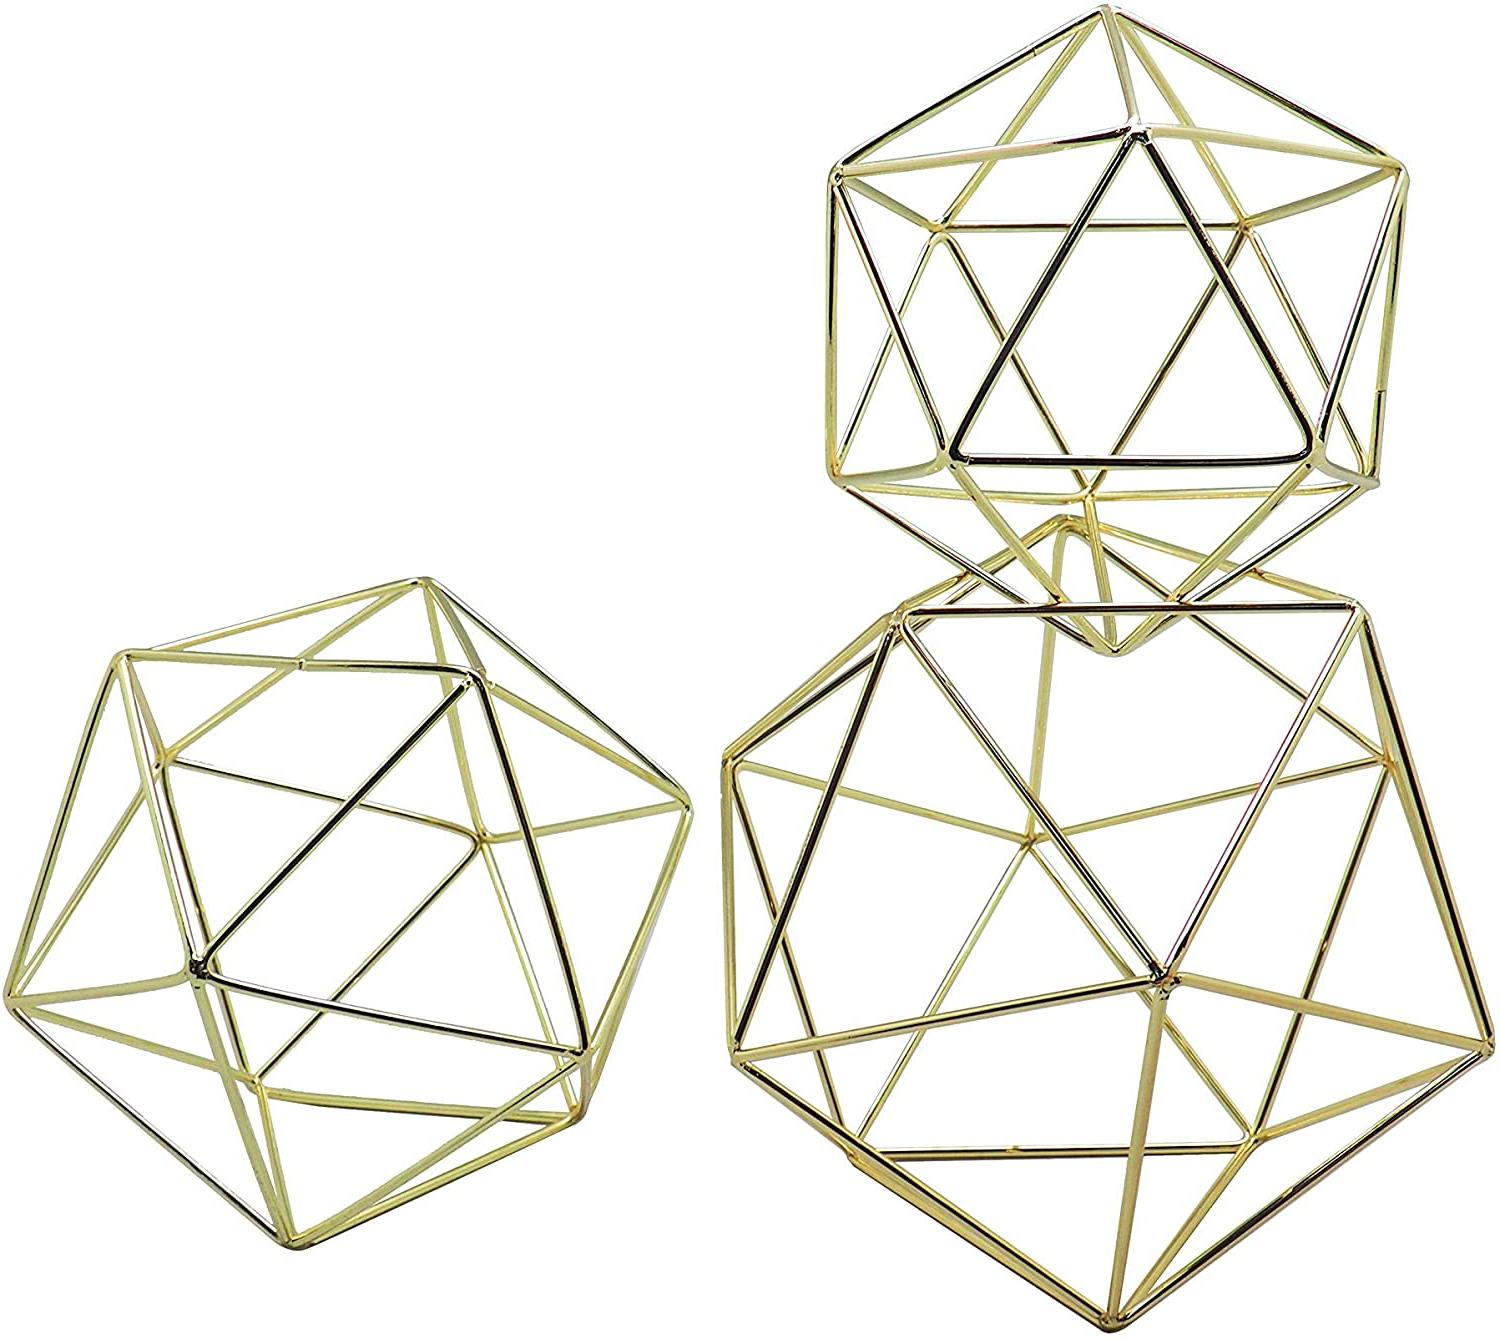 Koyal Wholesale Geometric Decor Shapes, Set Of 3 Assorted Sizes For Table Centerpiece Flower Holders, Gold 3d Hanging Decorations, Himmelis Prisms With Famous 3 Piece Prisma Wall Décor Set (View 12 of 20)